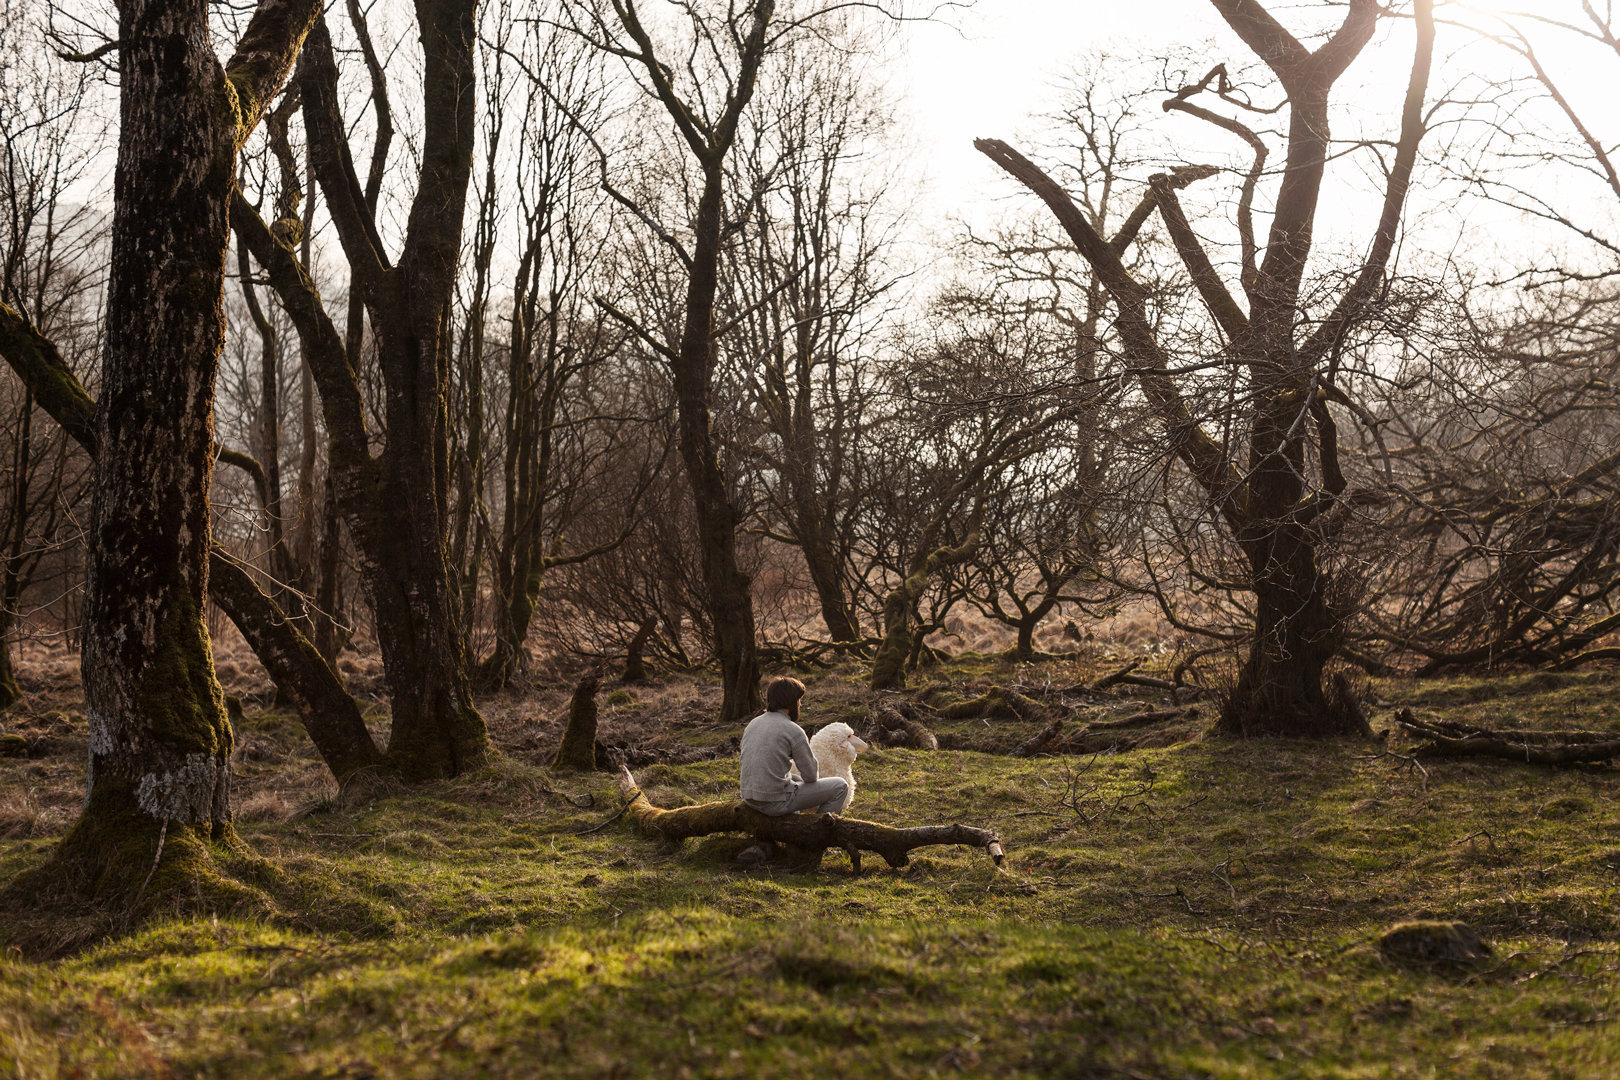 Beyond The Pines | Series of 8 images | 2014